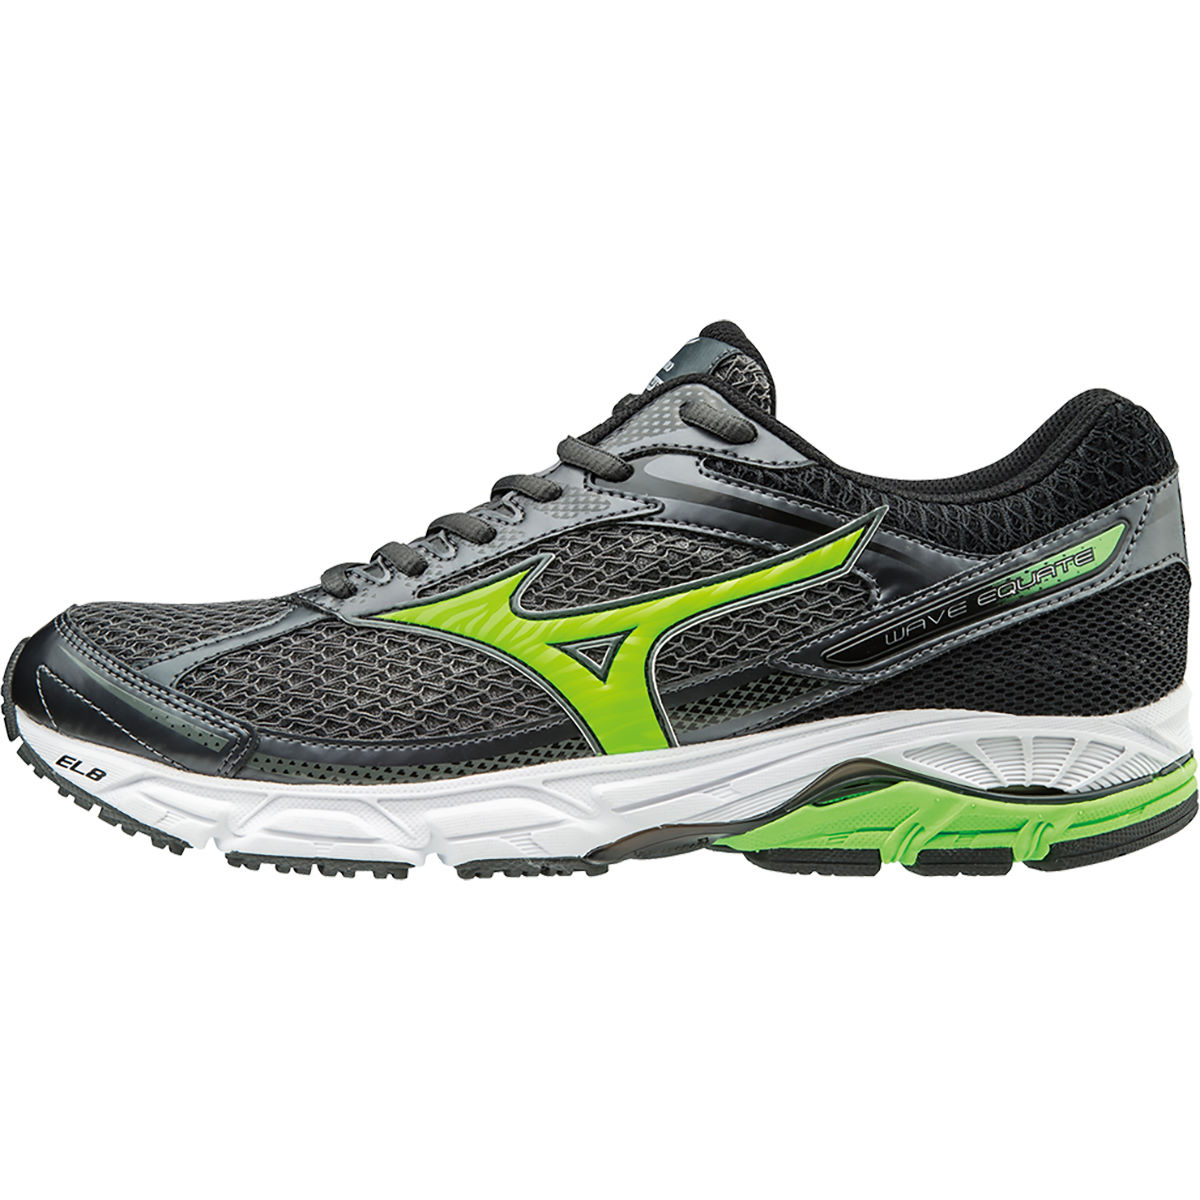 Chaussures Mizuno Wave Equate - UK 13 DarkShadow/GreenGeck